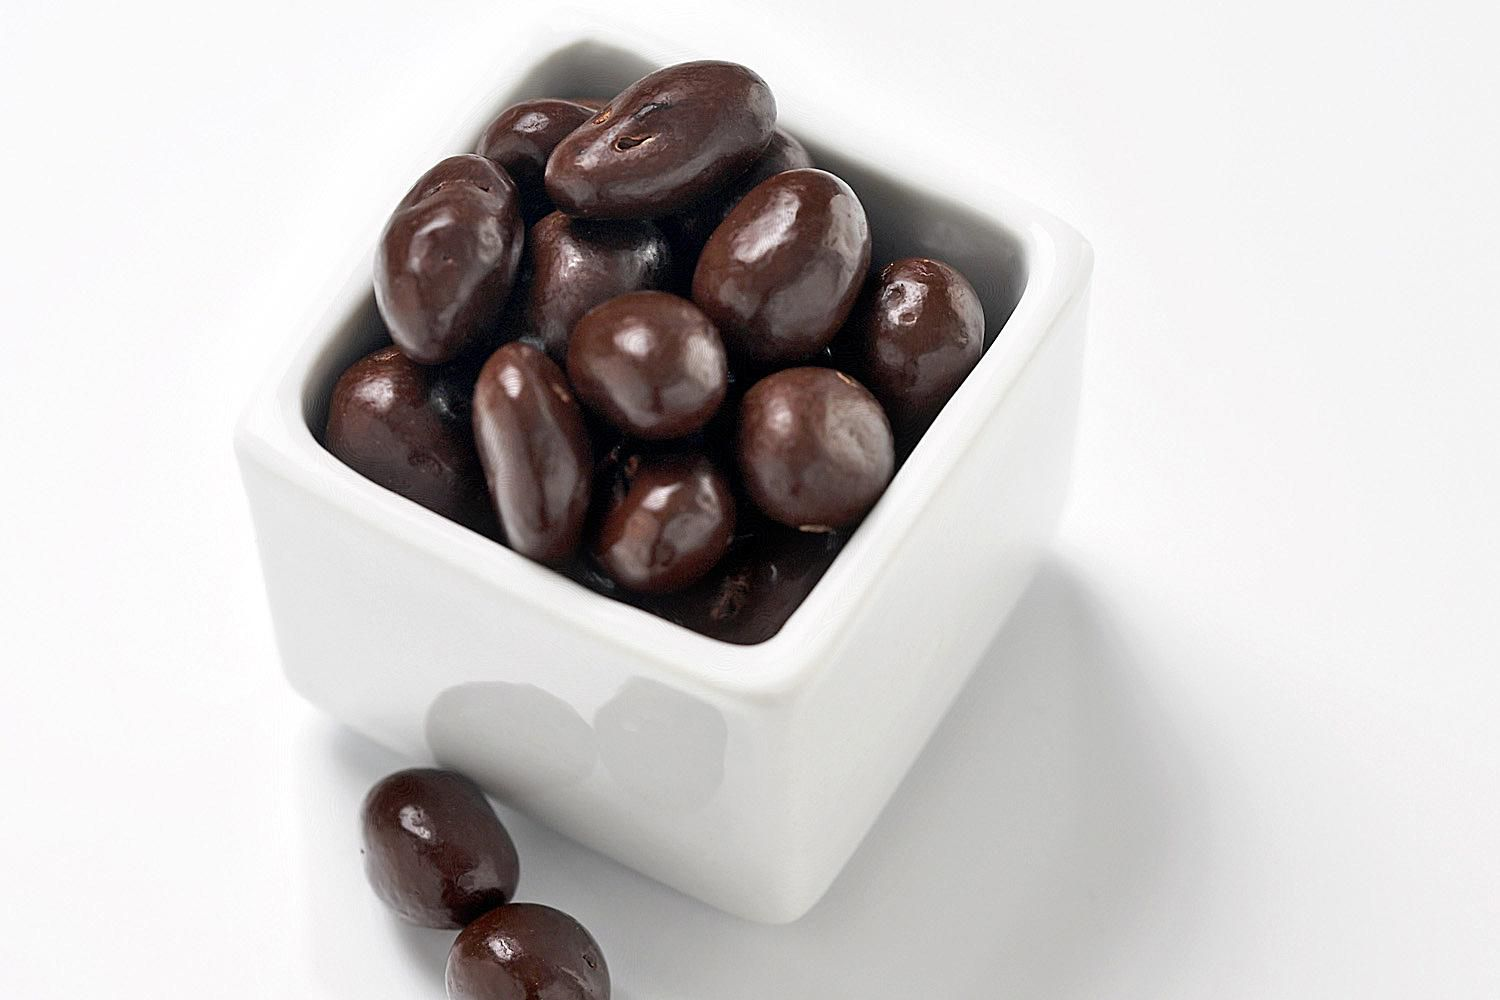 Make And Take Room In A Box Elizabeth Farm: Chocolate-Covered Raisins Recipe